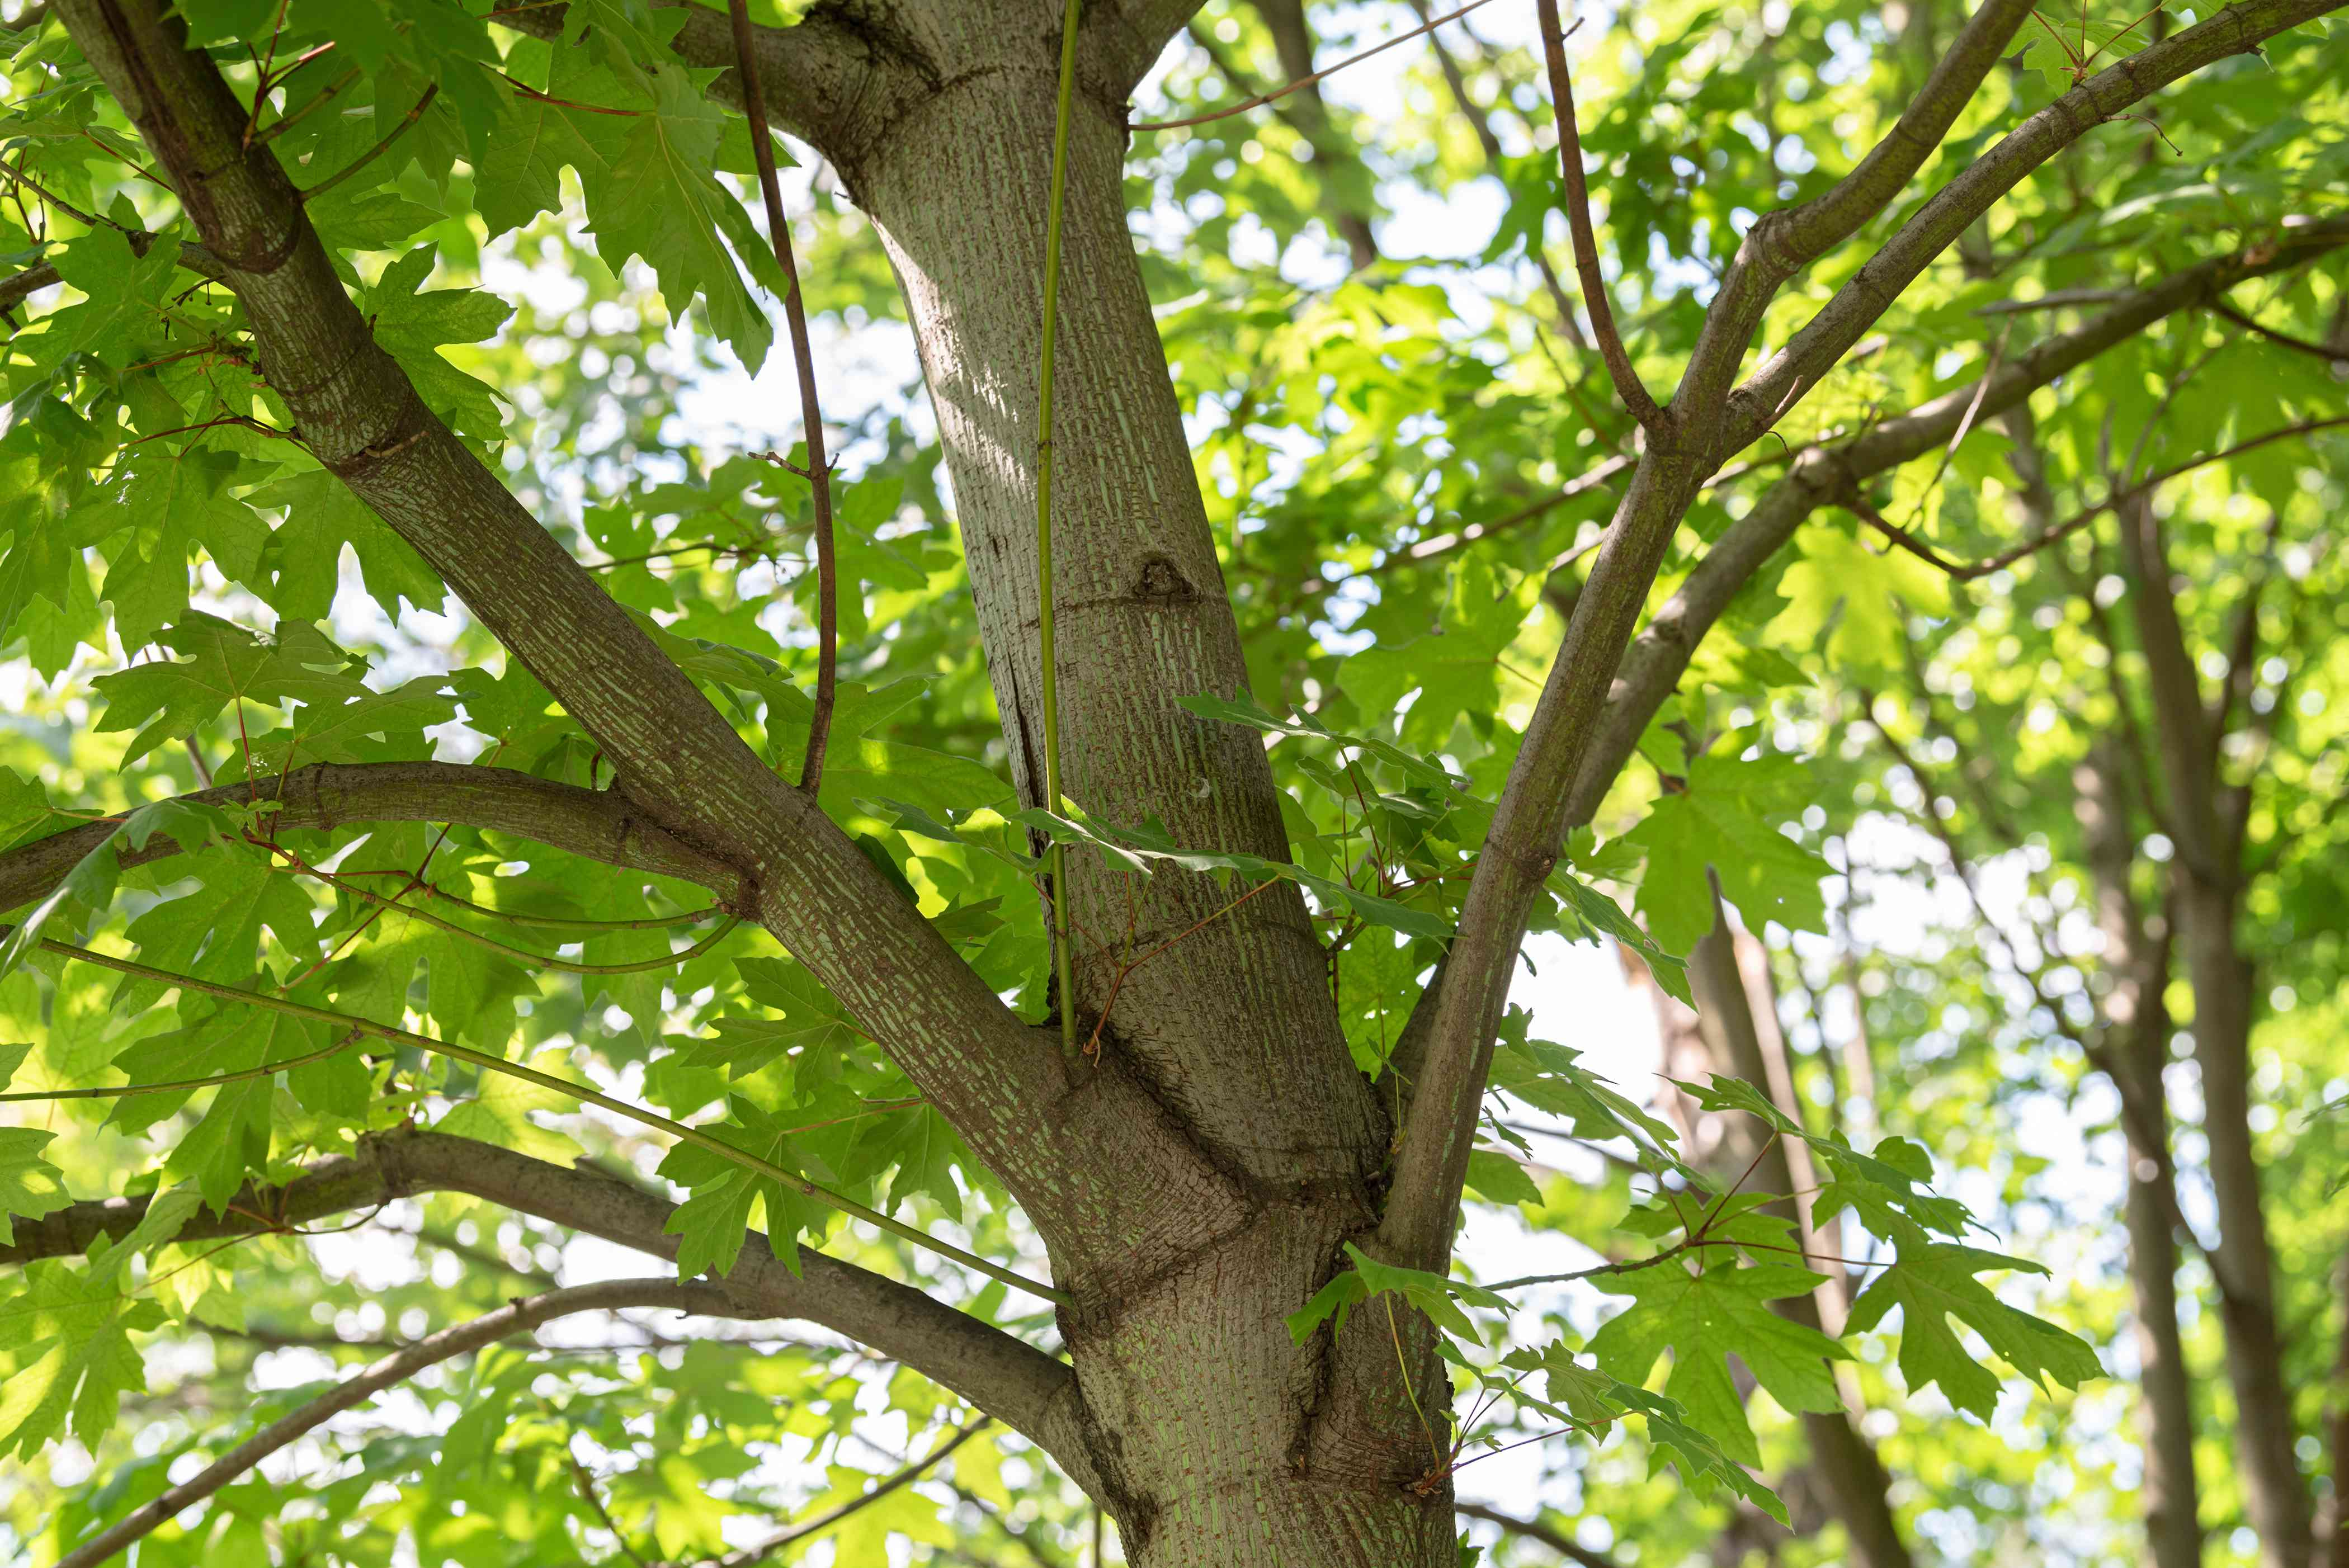 Big leaf maple tree trunk with light colored trunk and sprawling branches with large leaves